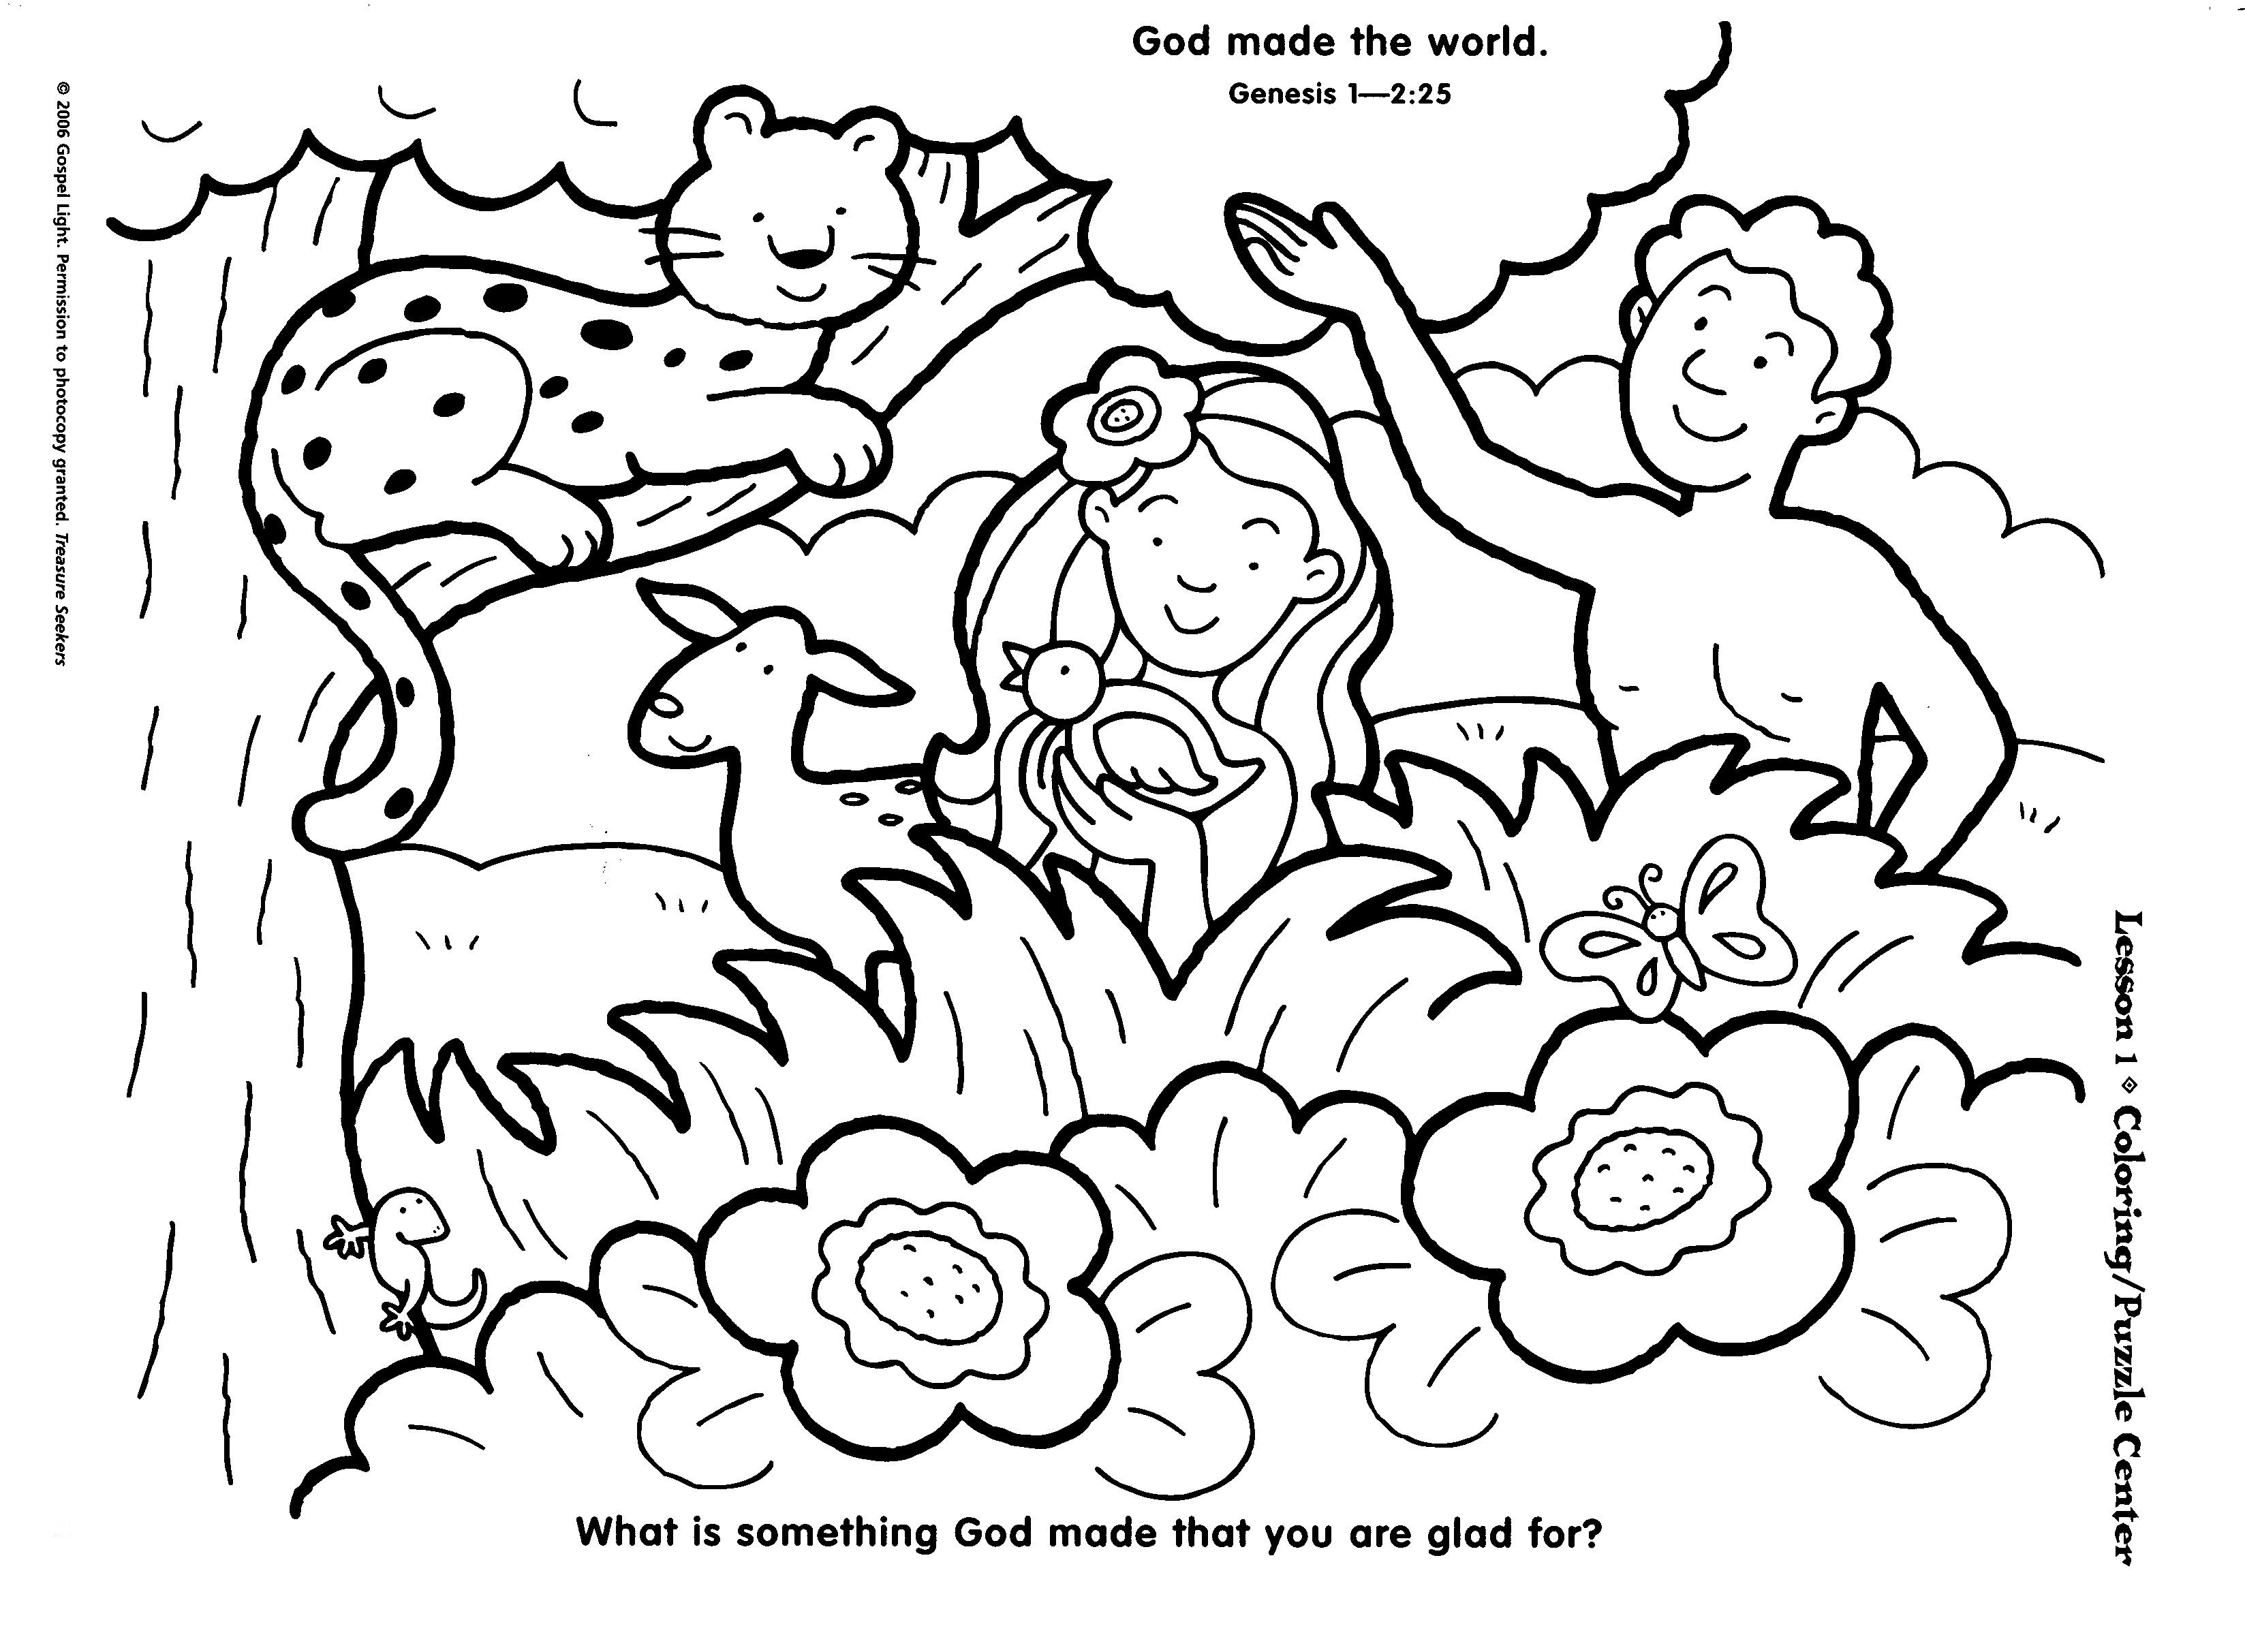 Free Printable Coloring Pages Sunday School: Sunday School Coloring - Free Printable Sunday School Coloring Pages